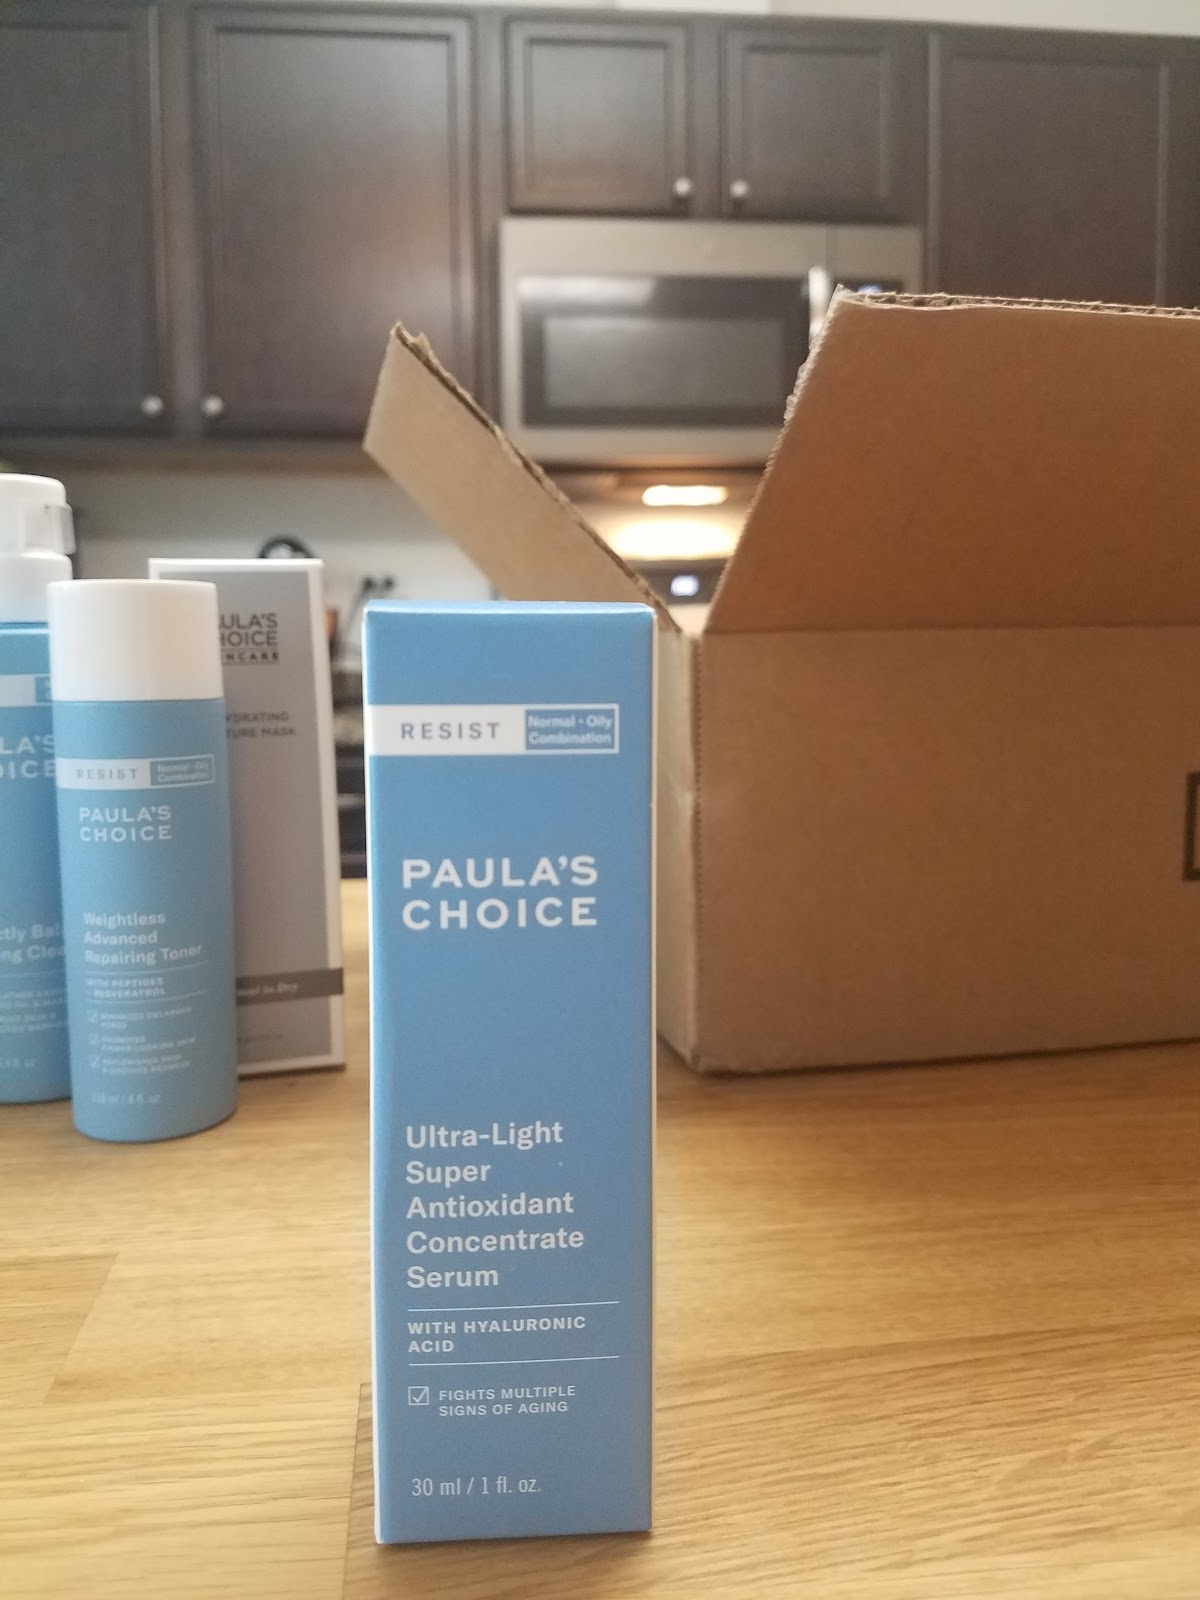 Paula's Choice Ultra-Light Super Antioxidant Concentrate Serum